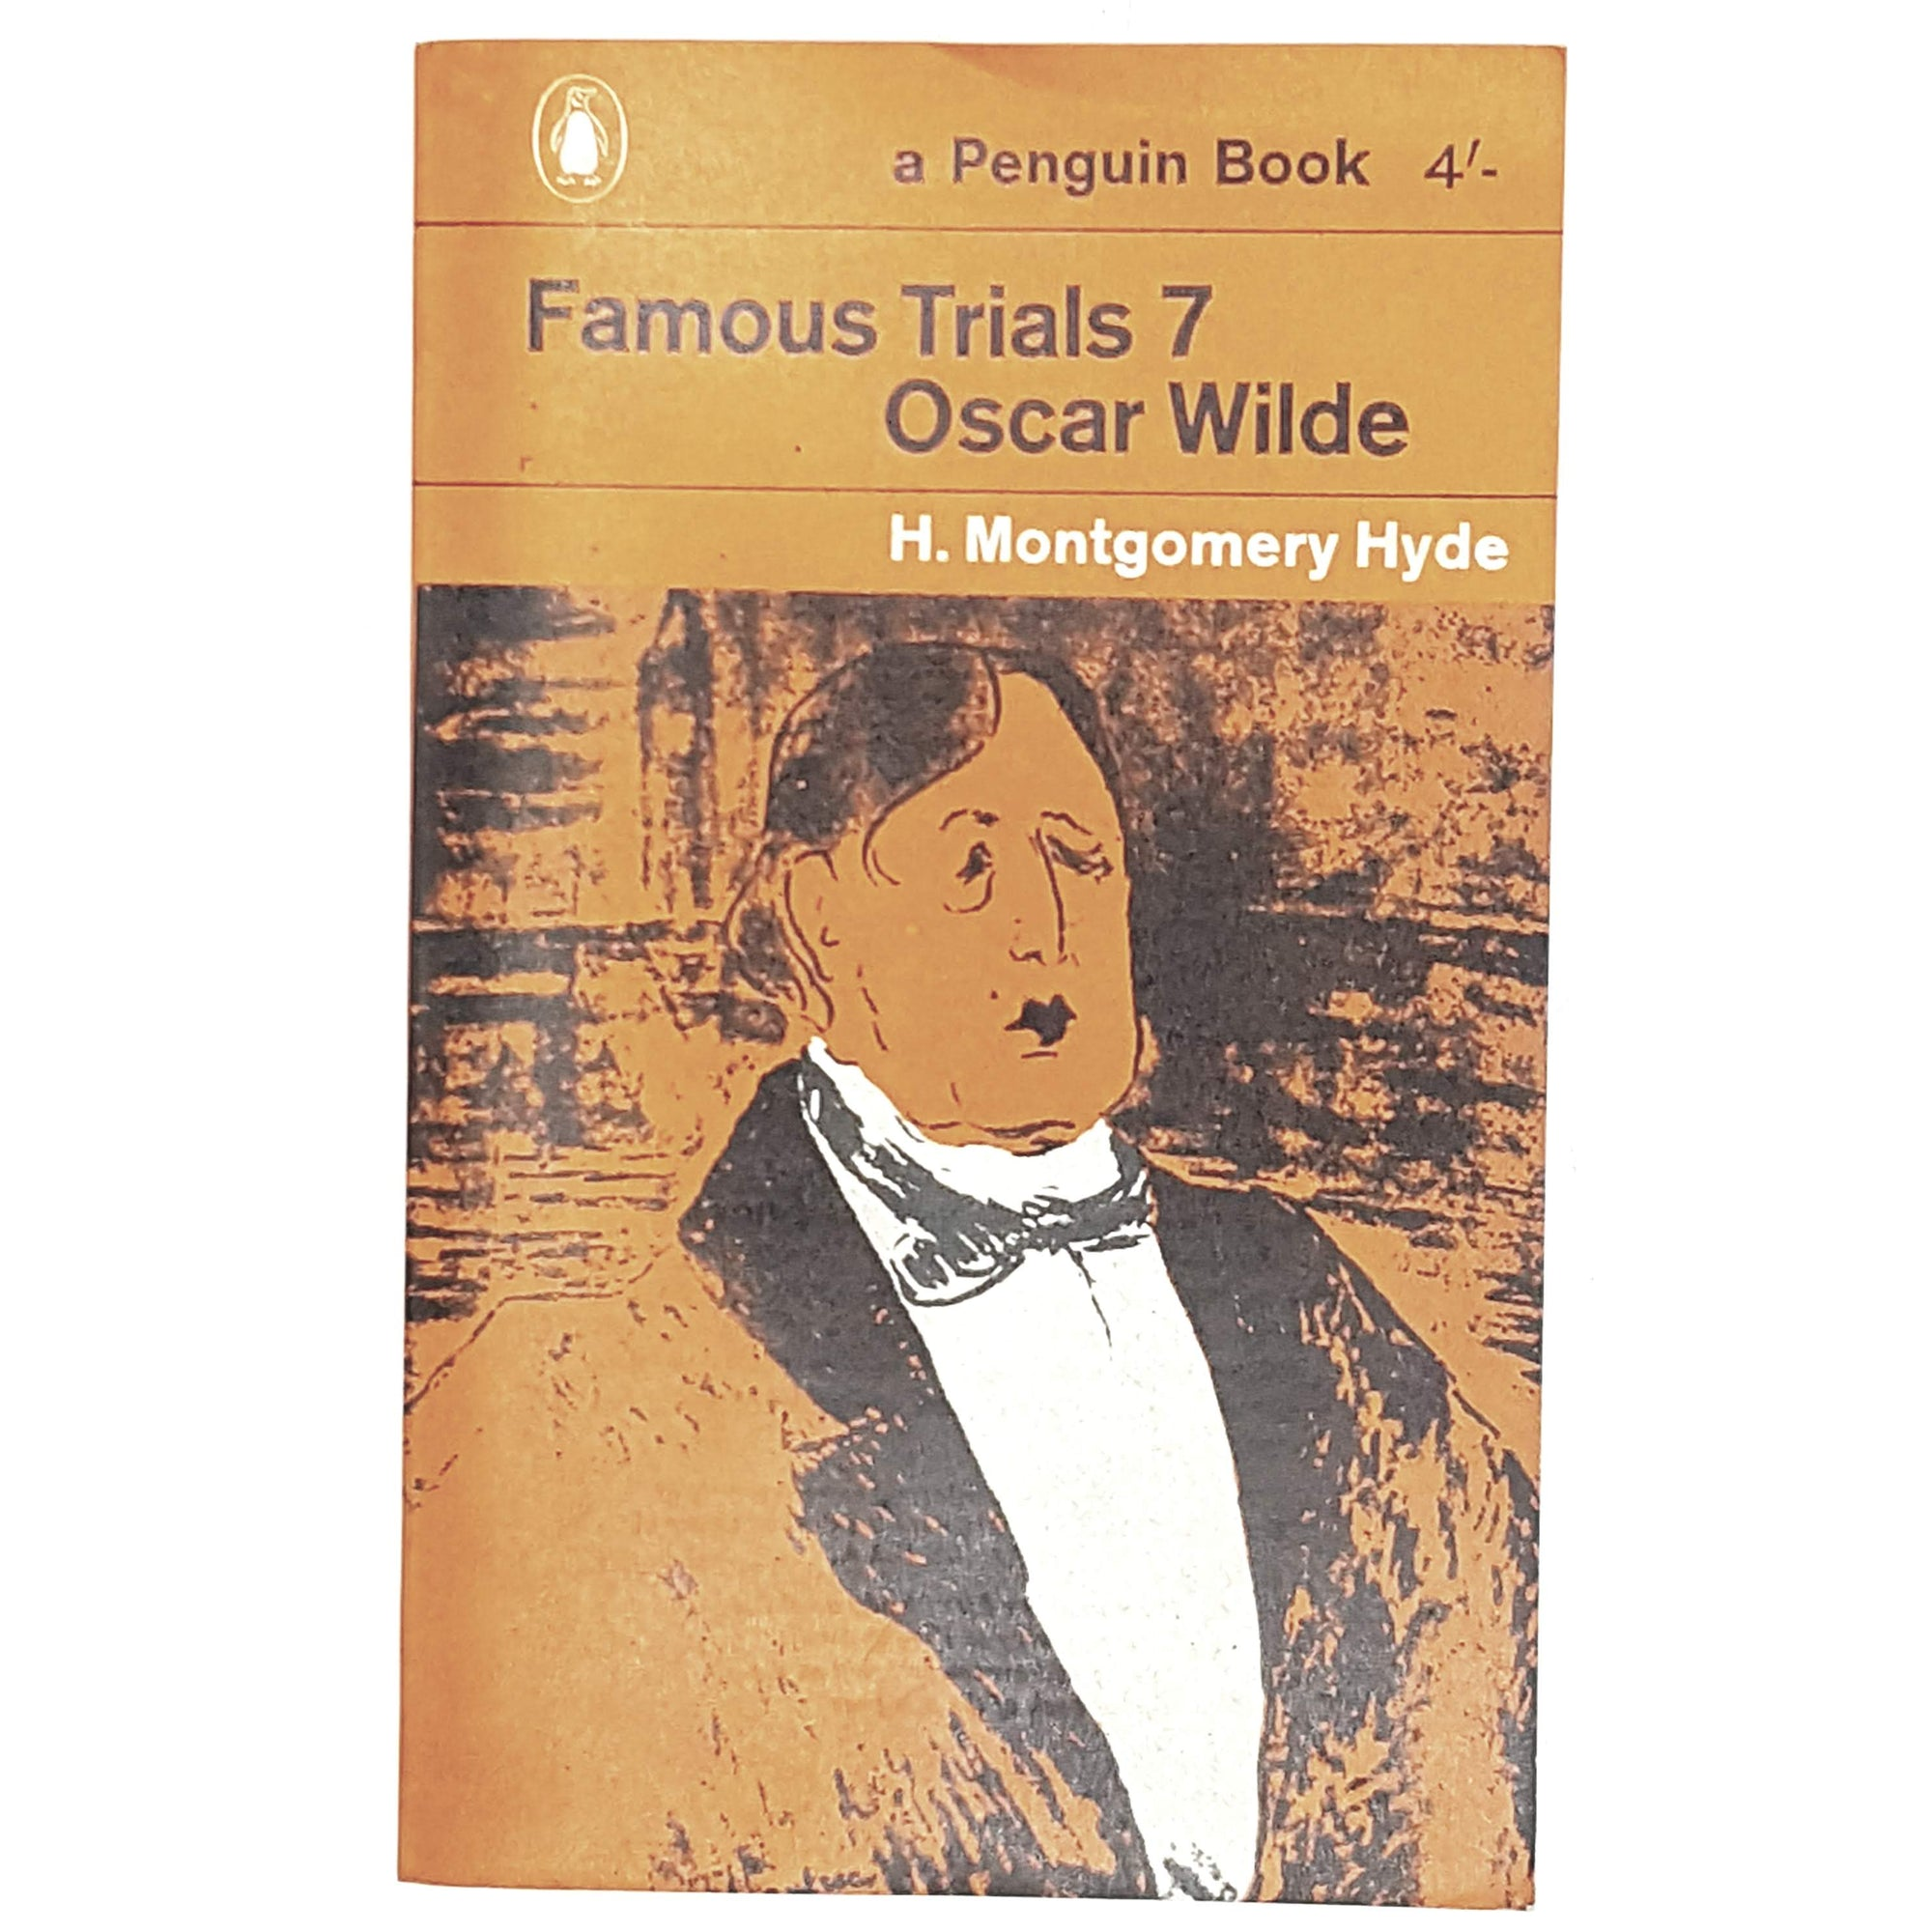 Oscar Wilde: Famous Trials 7 by H. Montgomery Hyde 1962